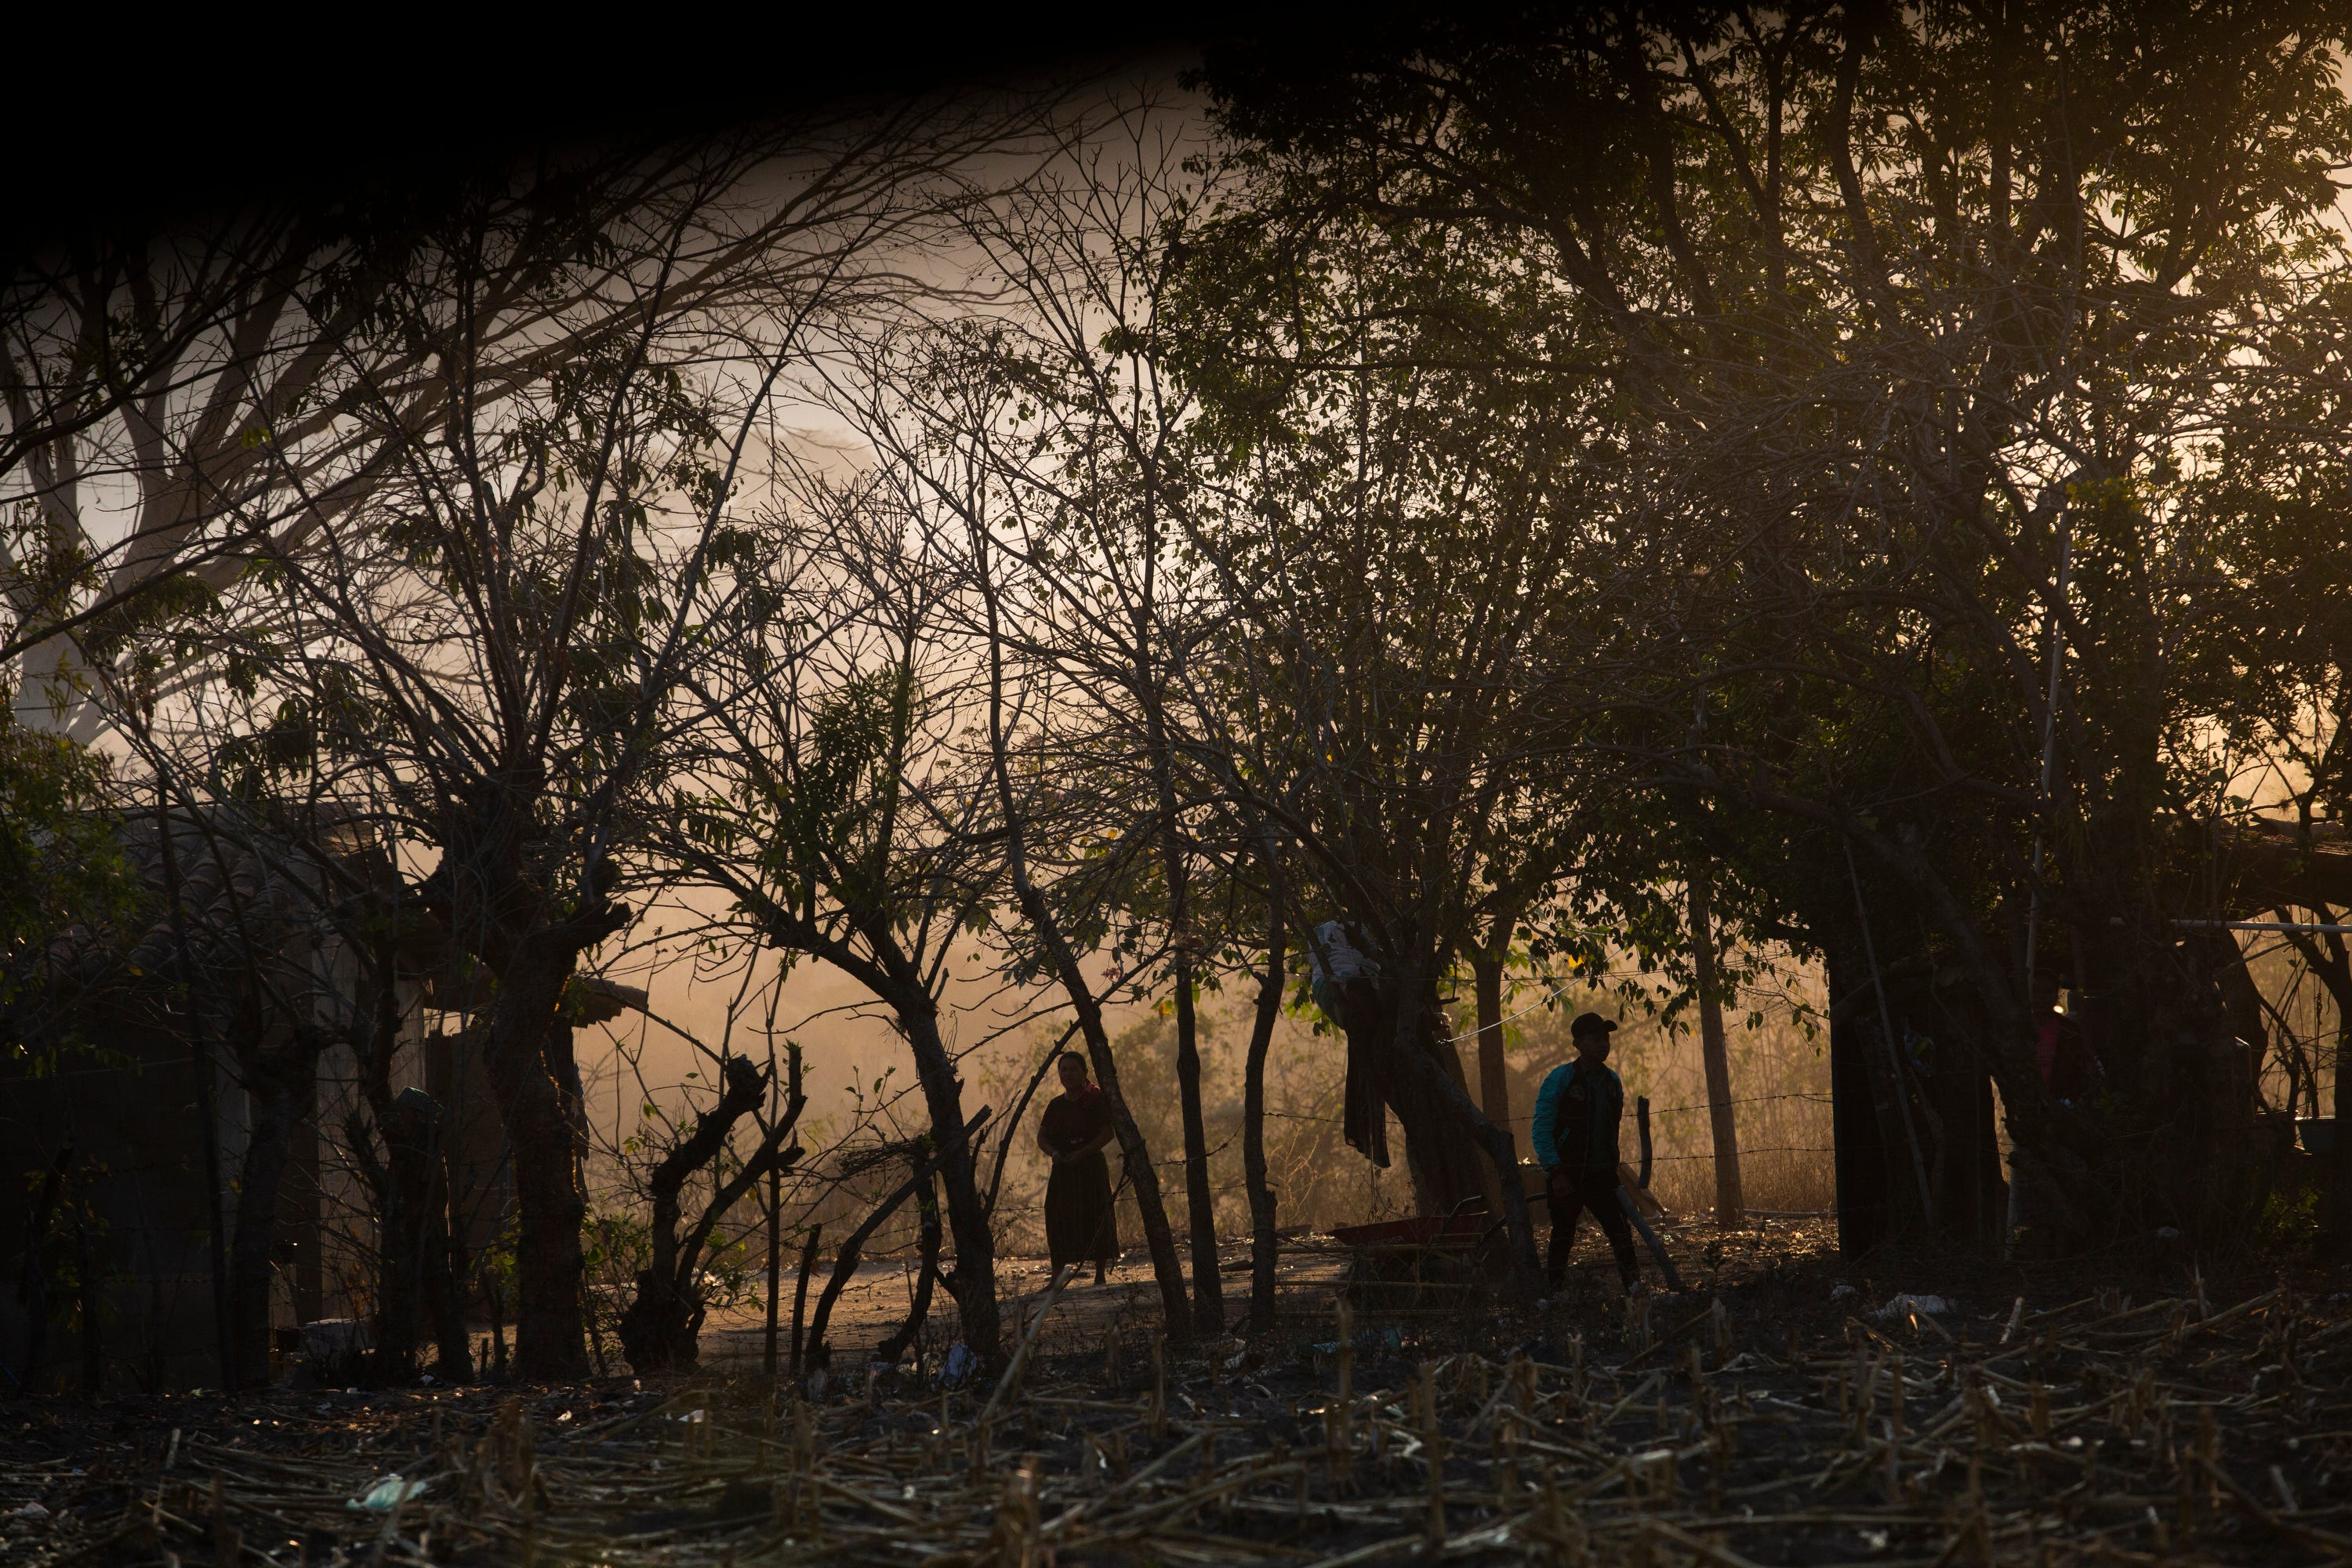 The sun rises in early March 2020 over the Mayan village where Francisco Sical lives with his family in Baja Verapaz, Guatemala.